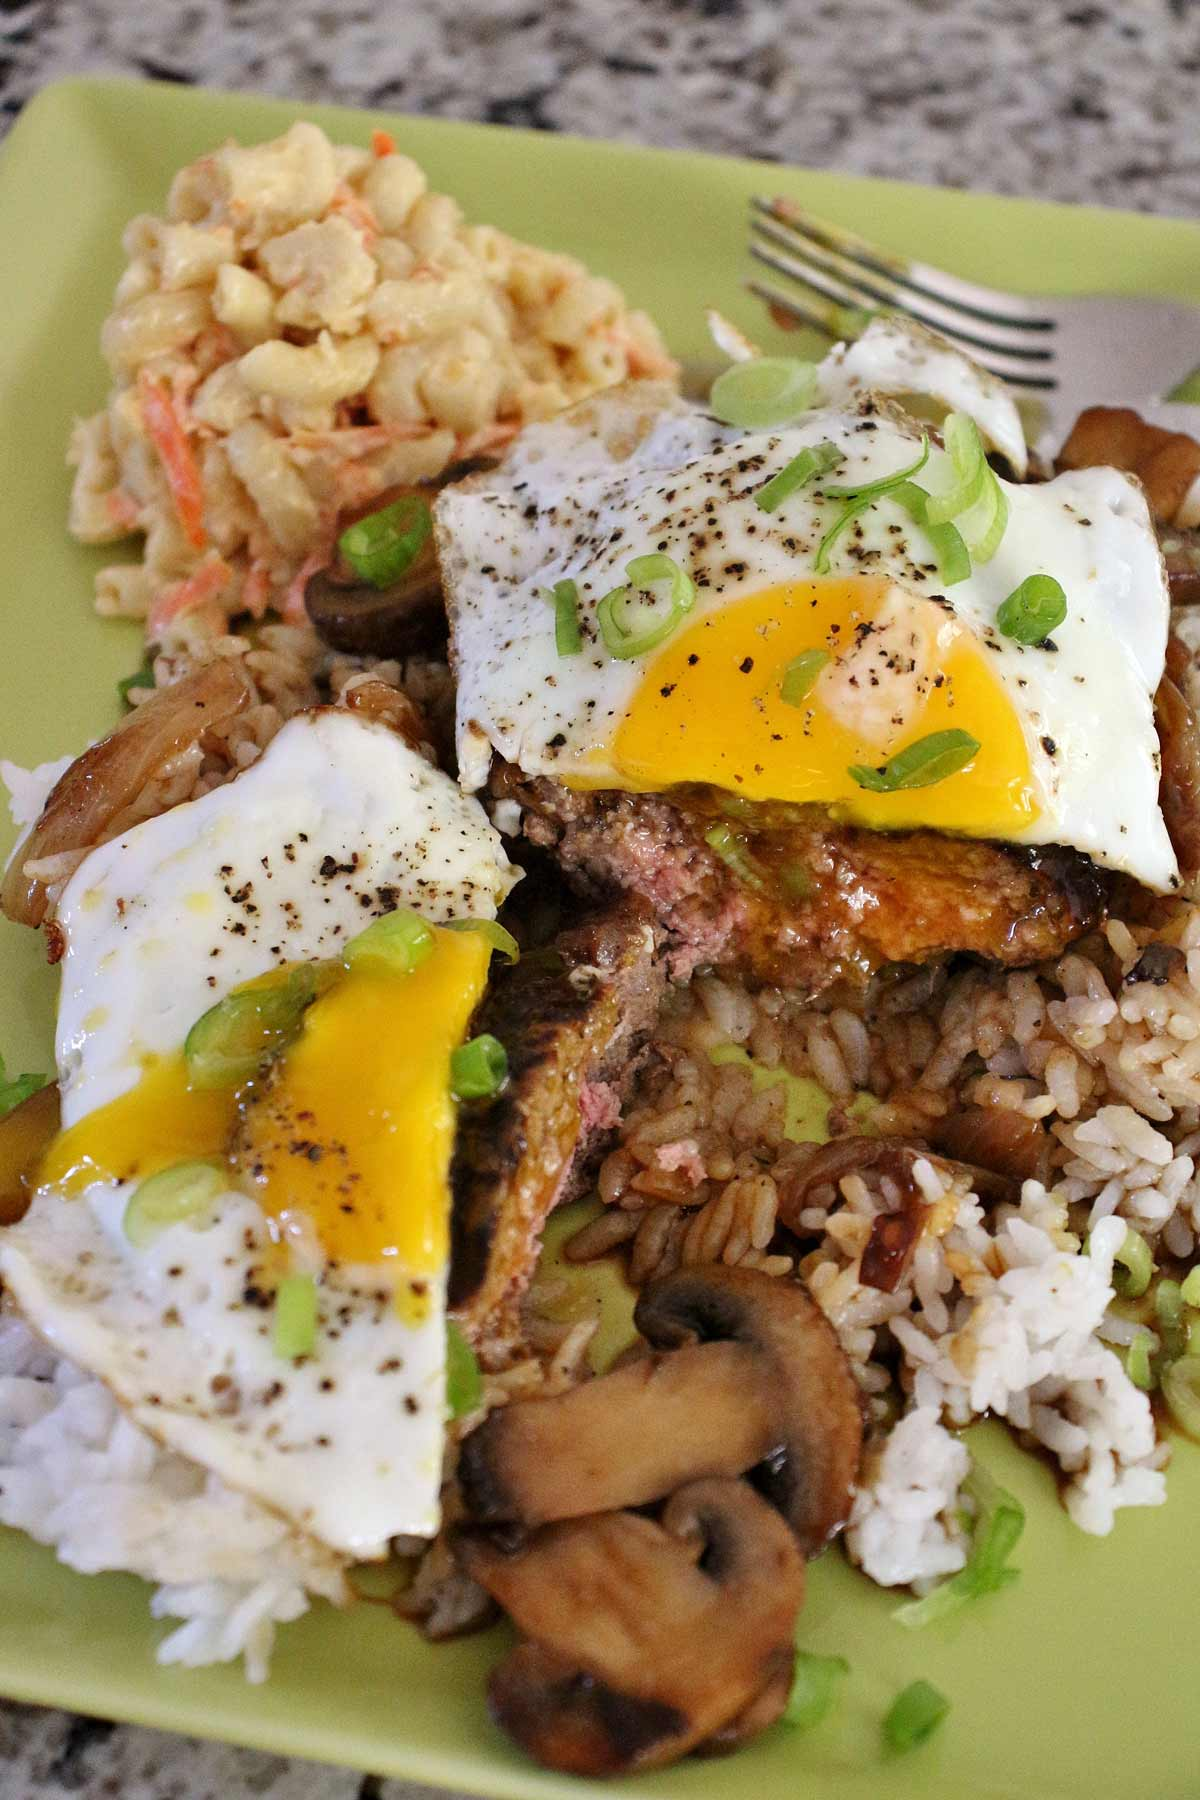 White rice topped with a beef patty, mushroom gravy, and a fried egg, cut in half.